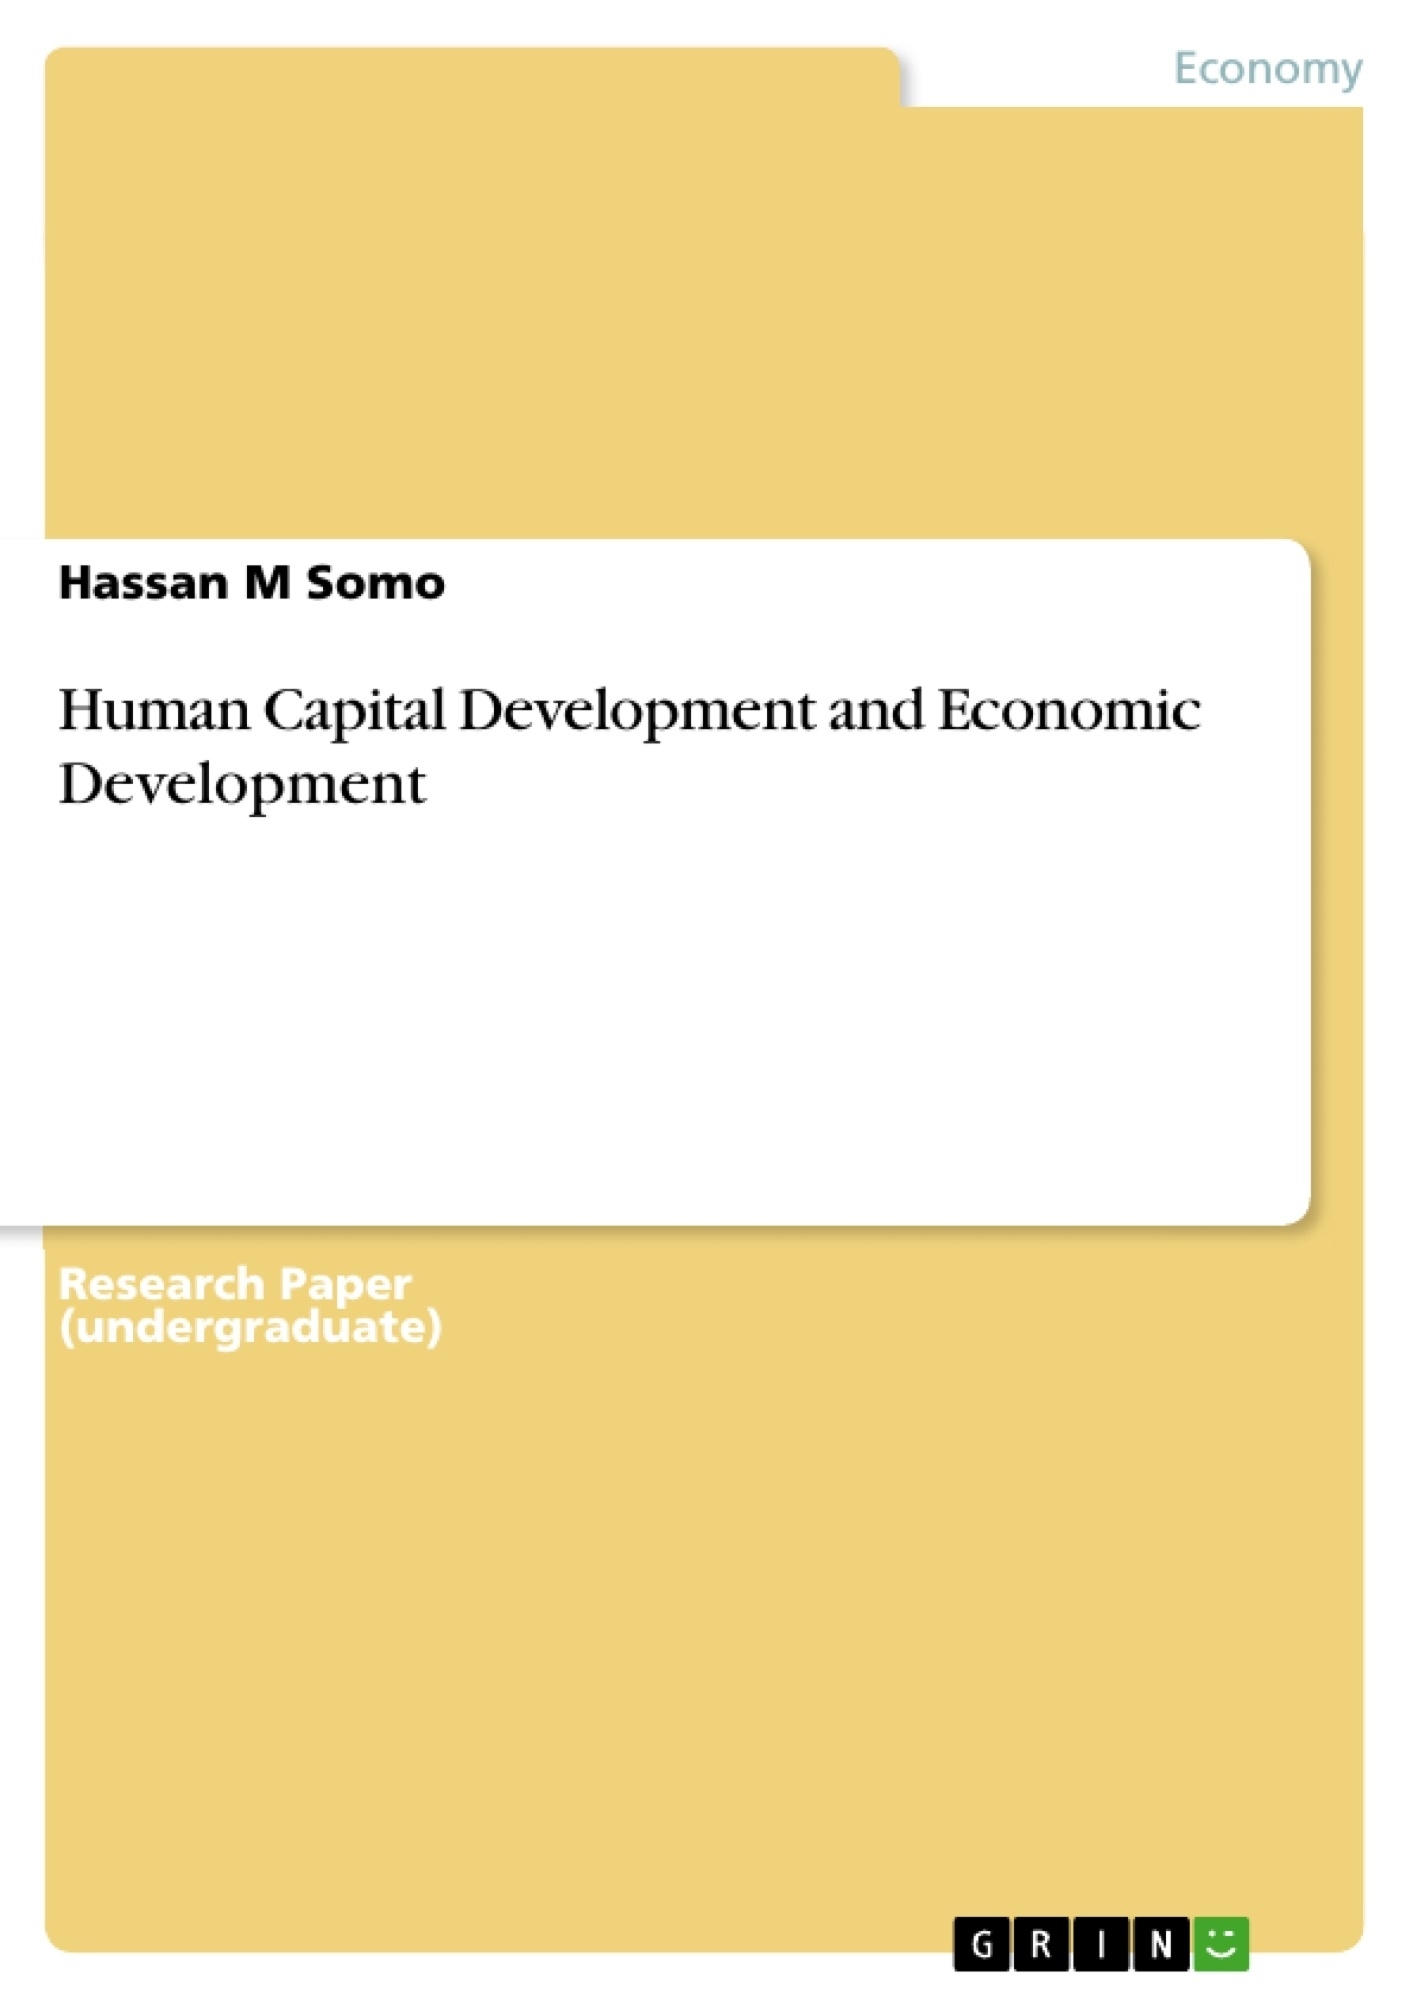 Title: Human Capital Development and Economic Development